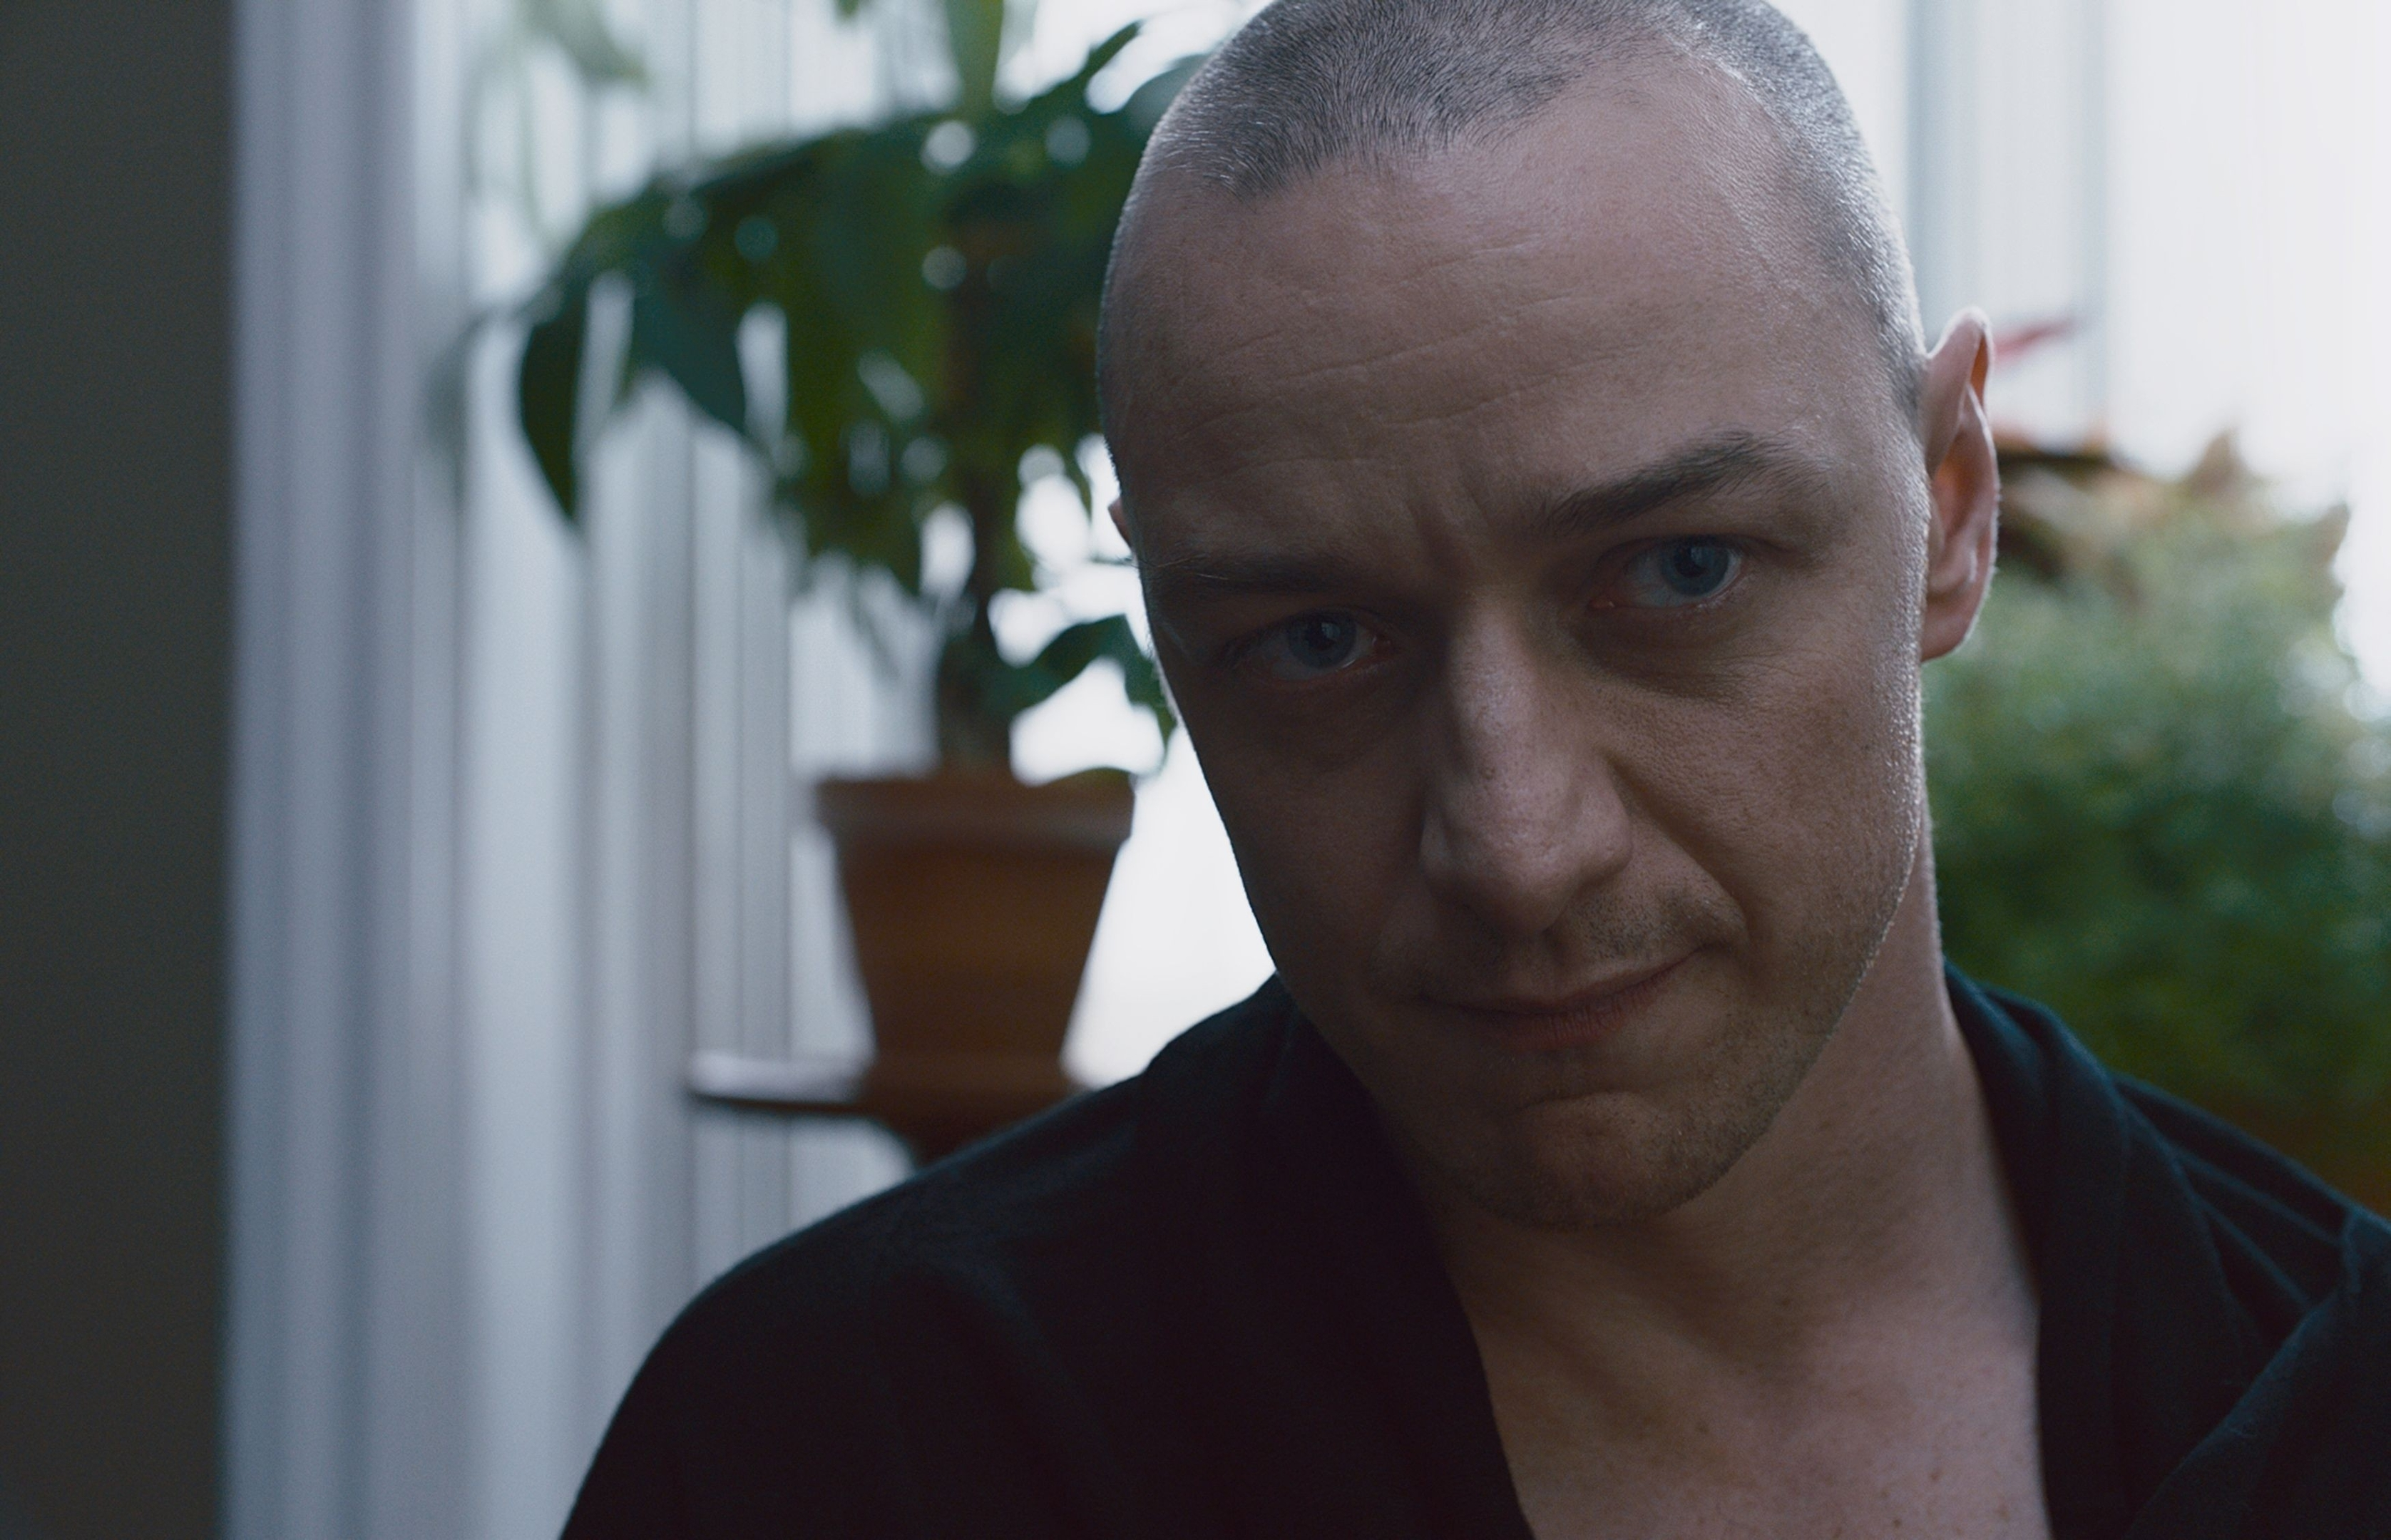 James McAvoy stars in the thriller as Kevin.